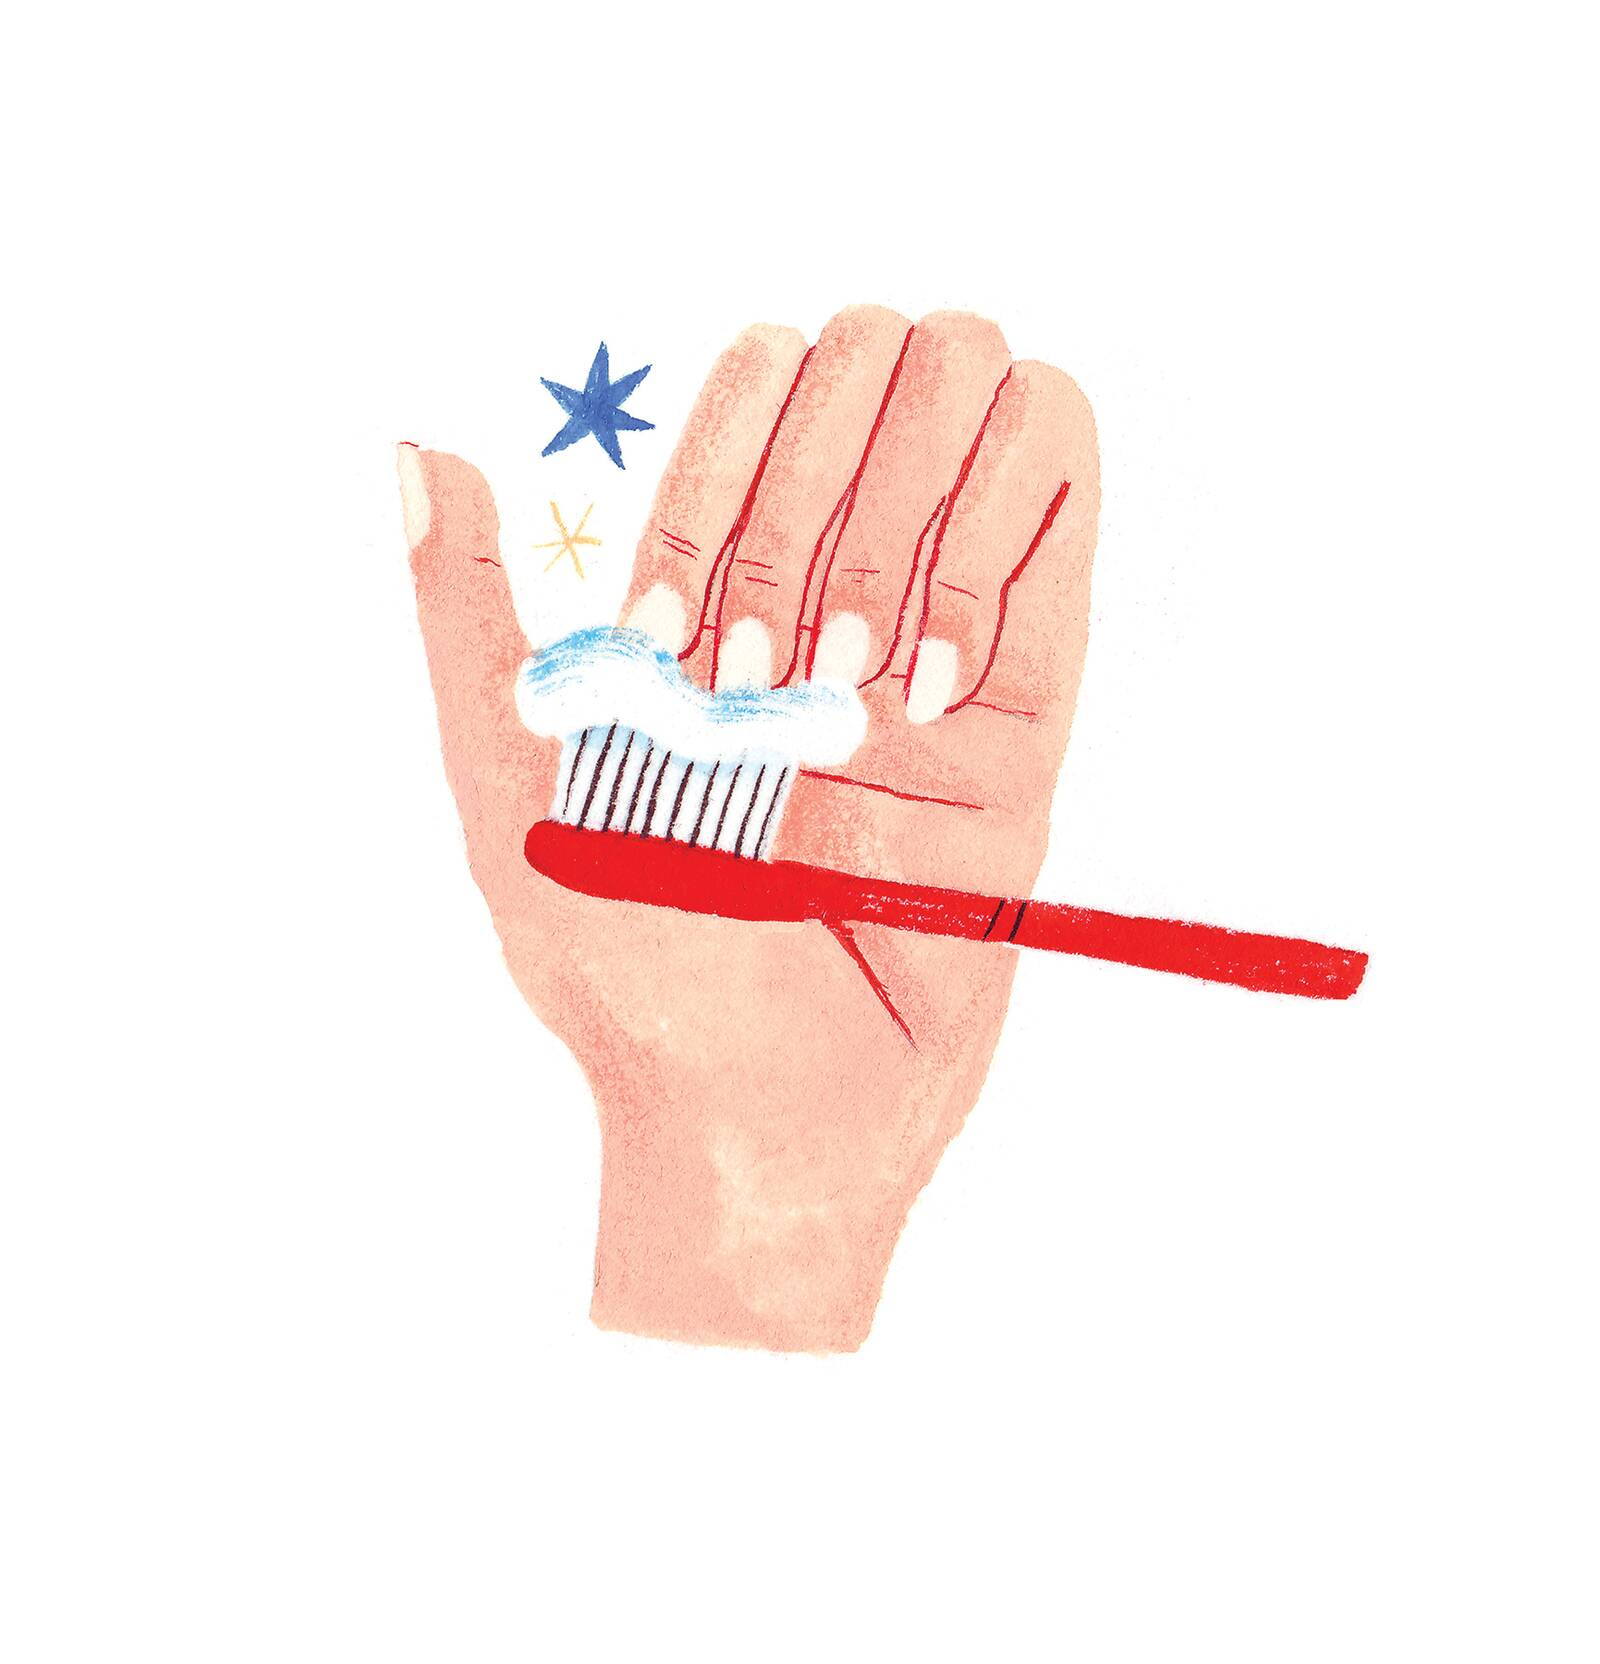 Illustration: Spruce Up Nails in Seconds